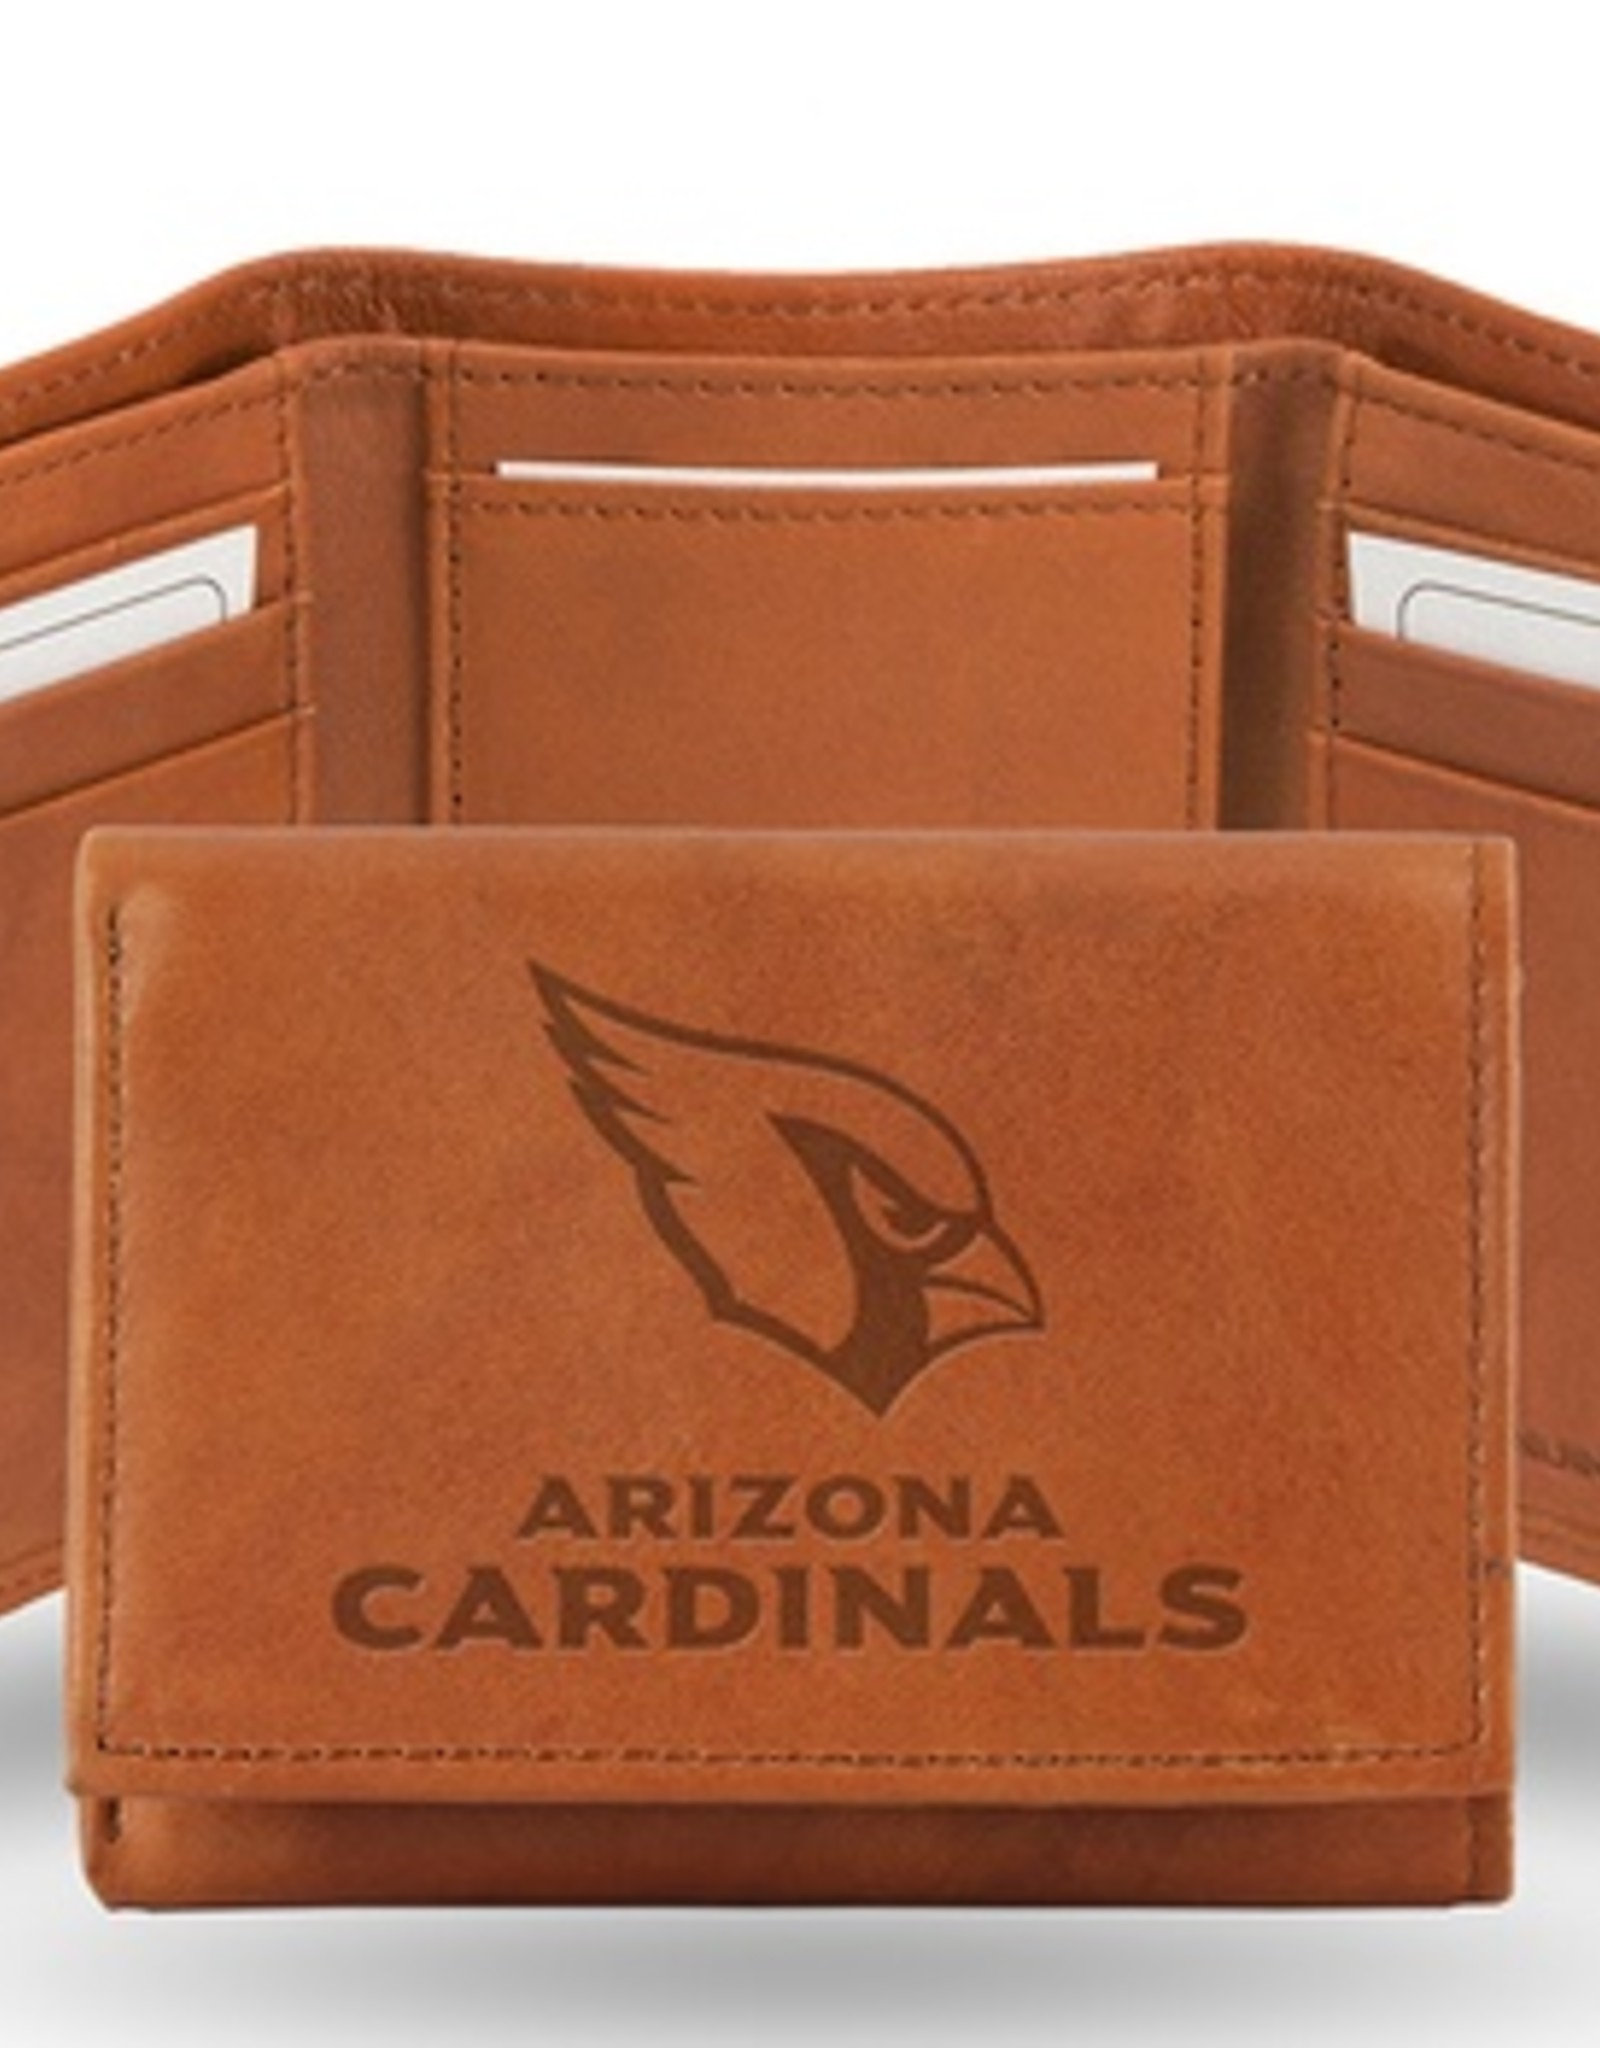 RICO INDUSTRIES Arizona Cardinals Genuine Leather Vintage Trifold Wallet